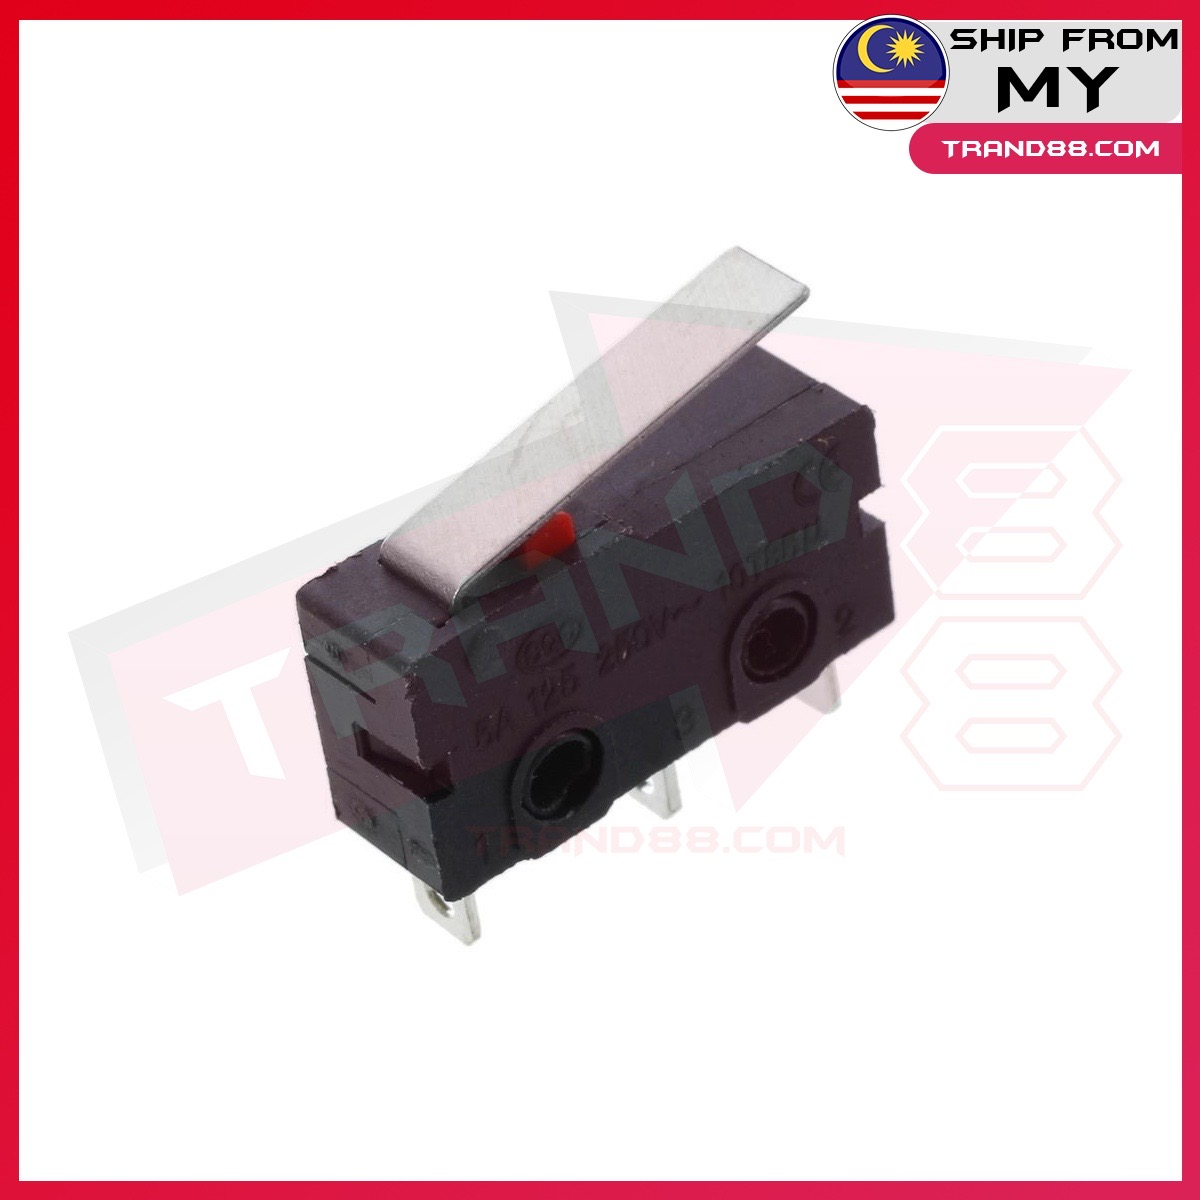 Micro Switch Lever Roller Arm Actuator SPDT KW11-3Z-2 3Pin 5A 125 250VAC Contact Switch